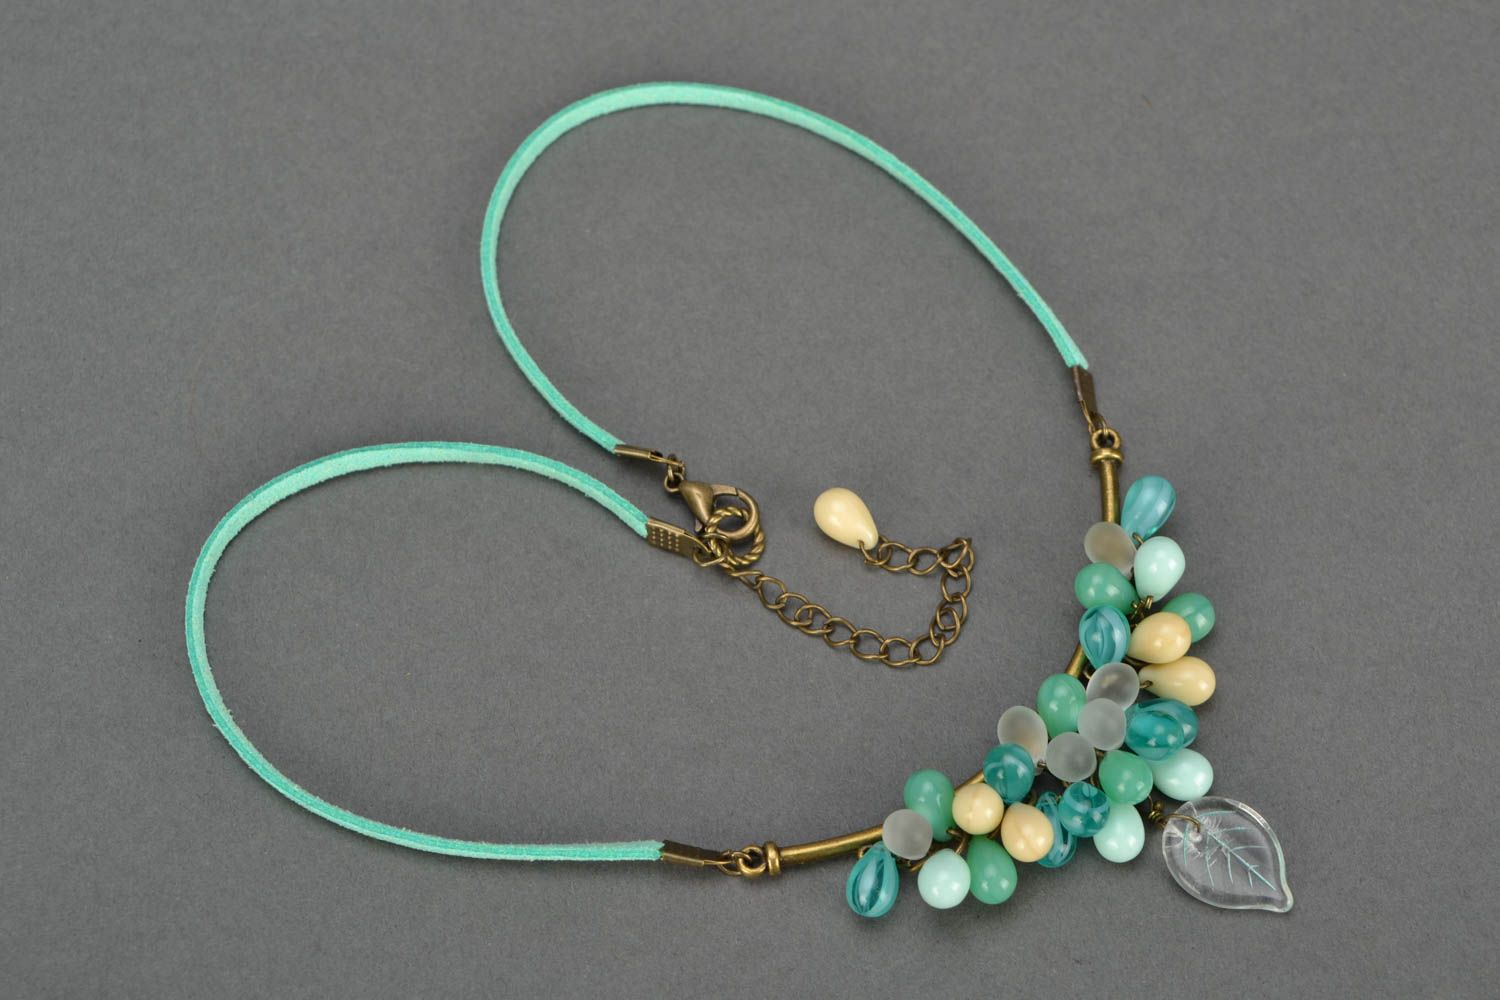 Beautiful homemade suede cord necklace with glass beads unusual design photo 4